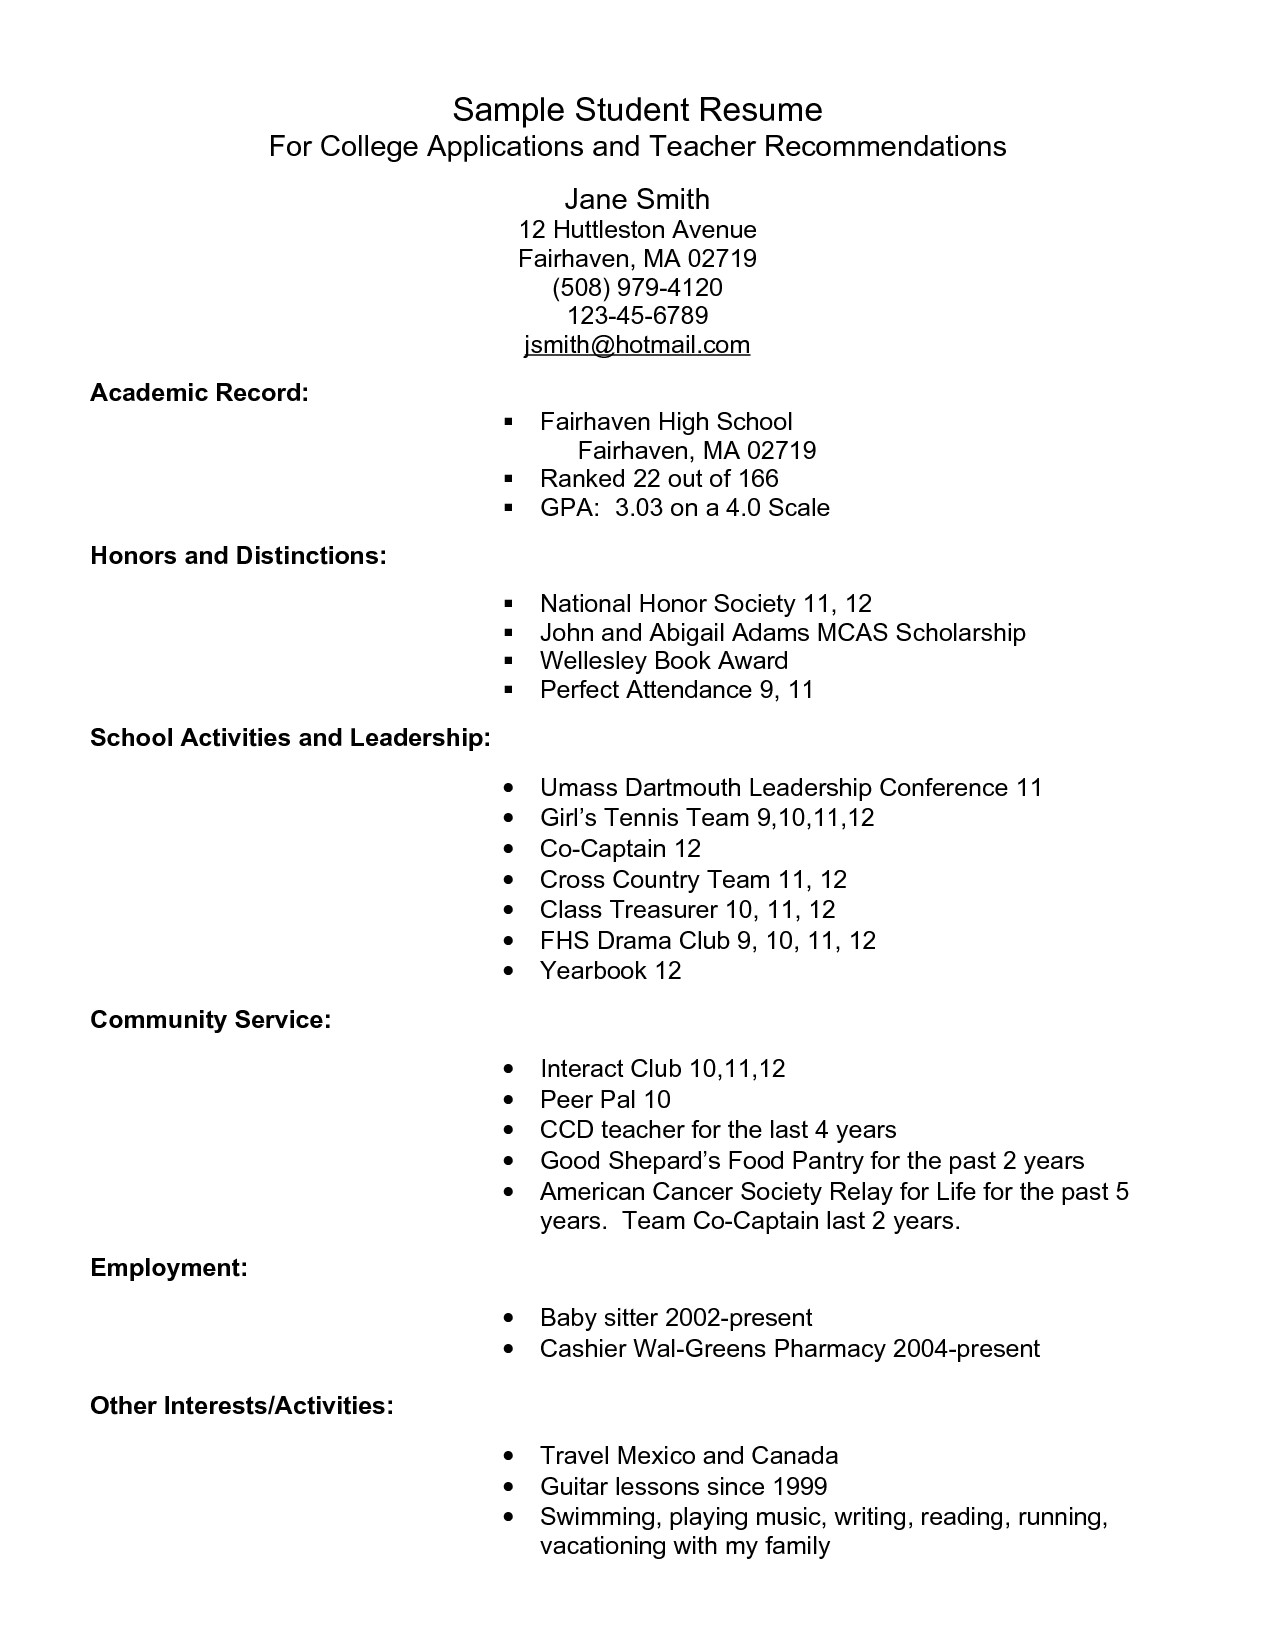 College Admissions Resume Template Example Resume for High School Students for College